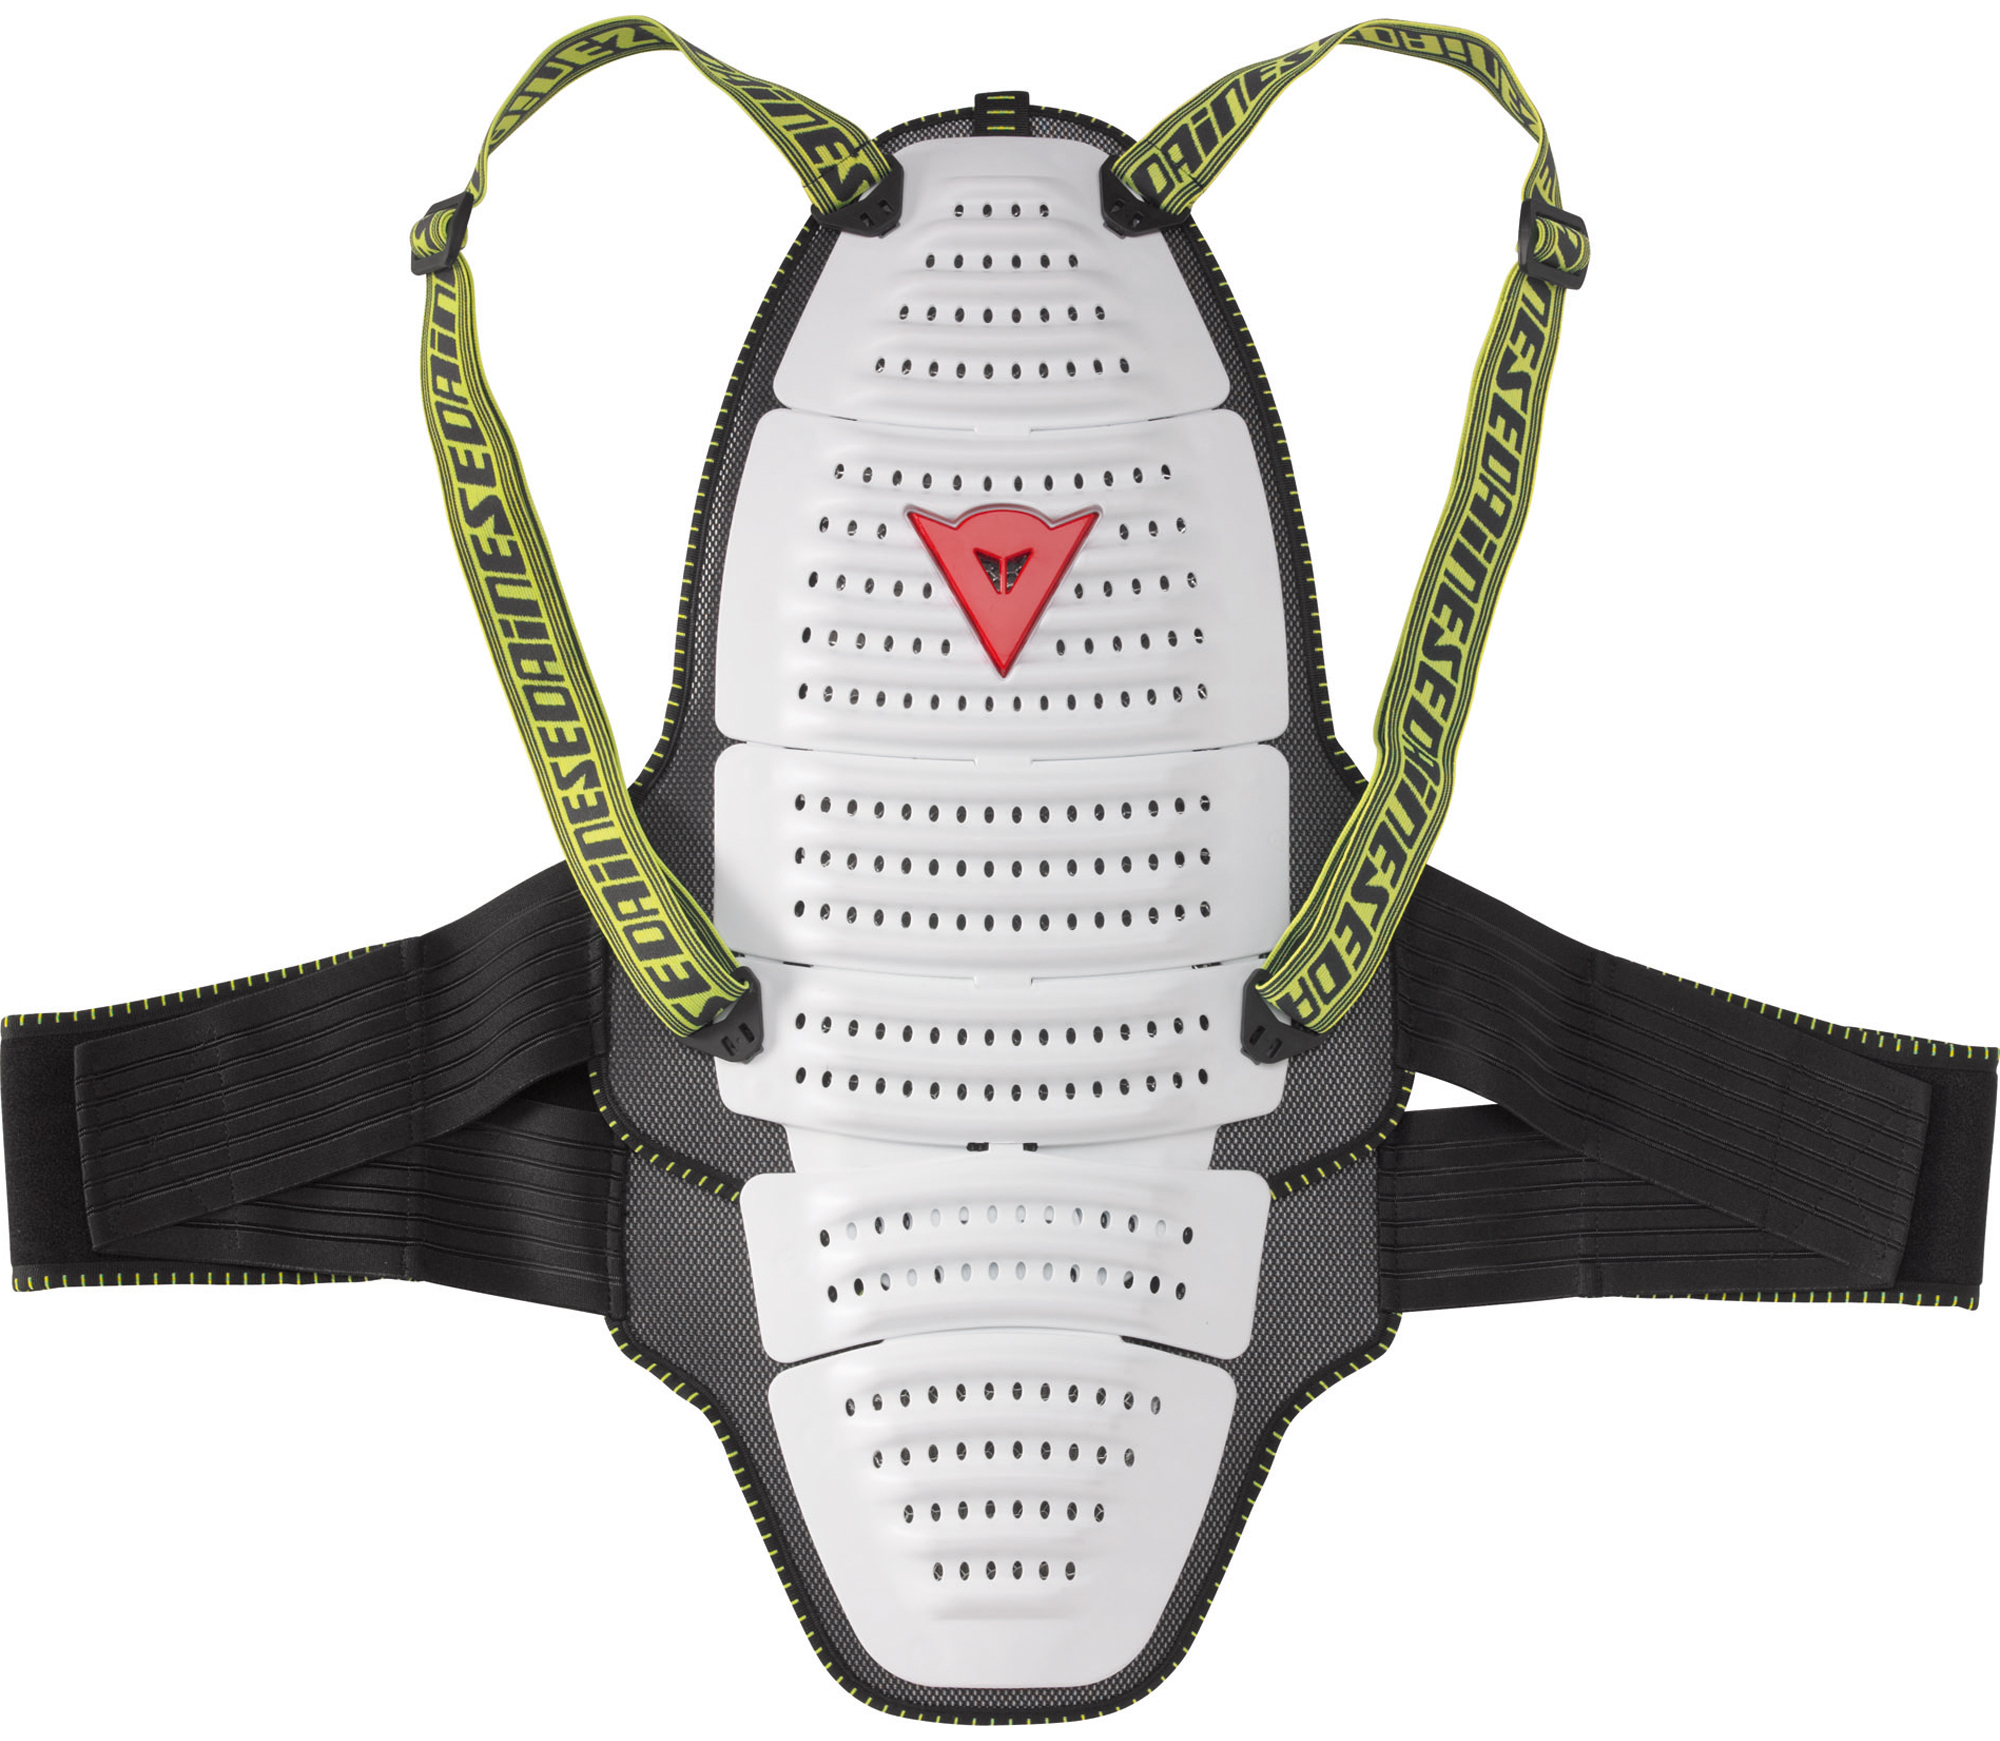 Dainese Защита спины Dainese Action Wave 03 Pro dainese защита торса dainese flexagon